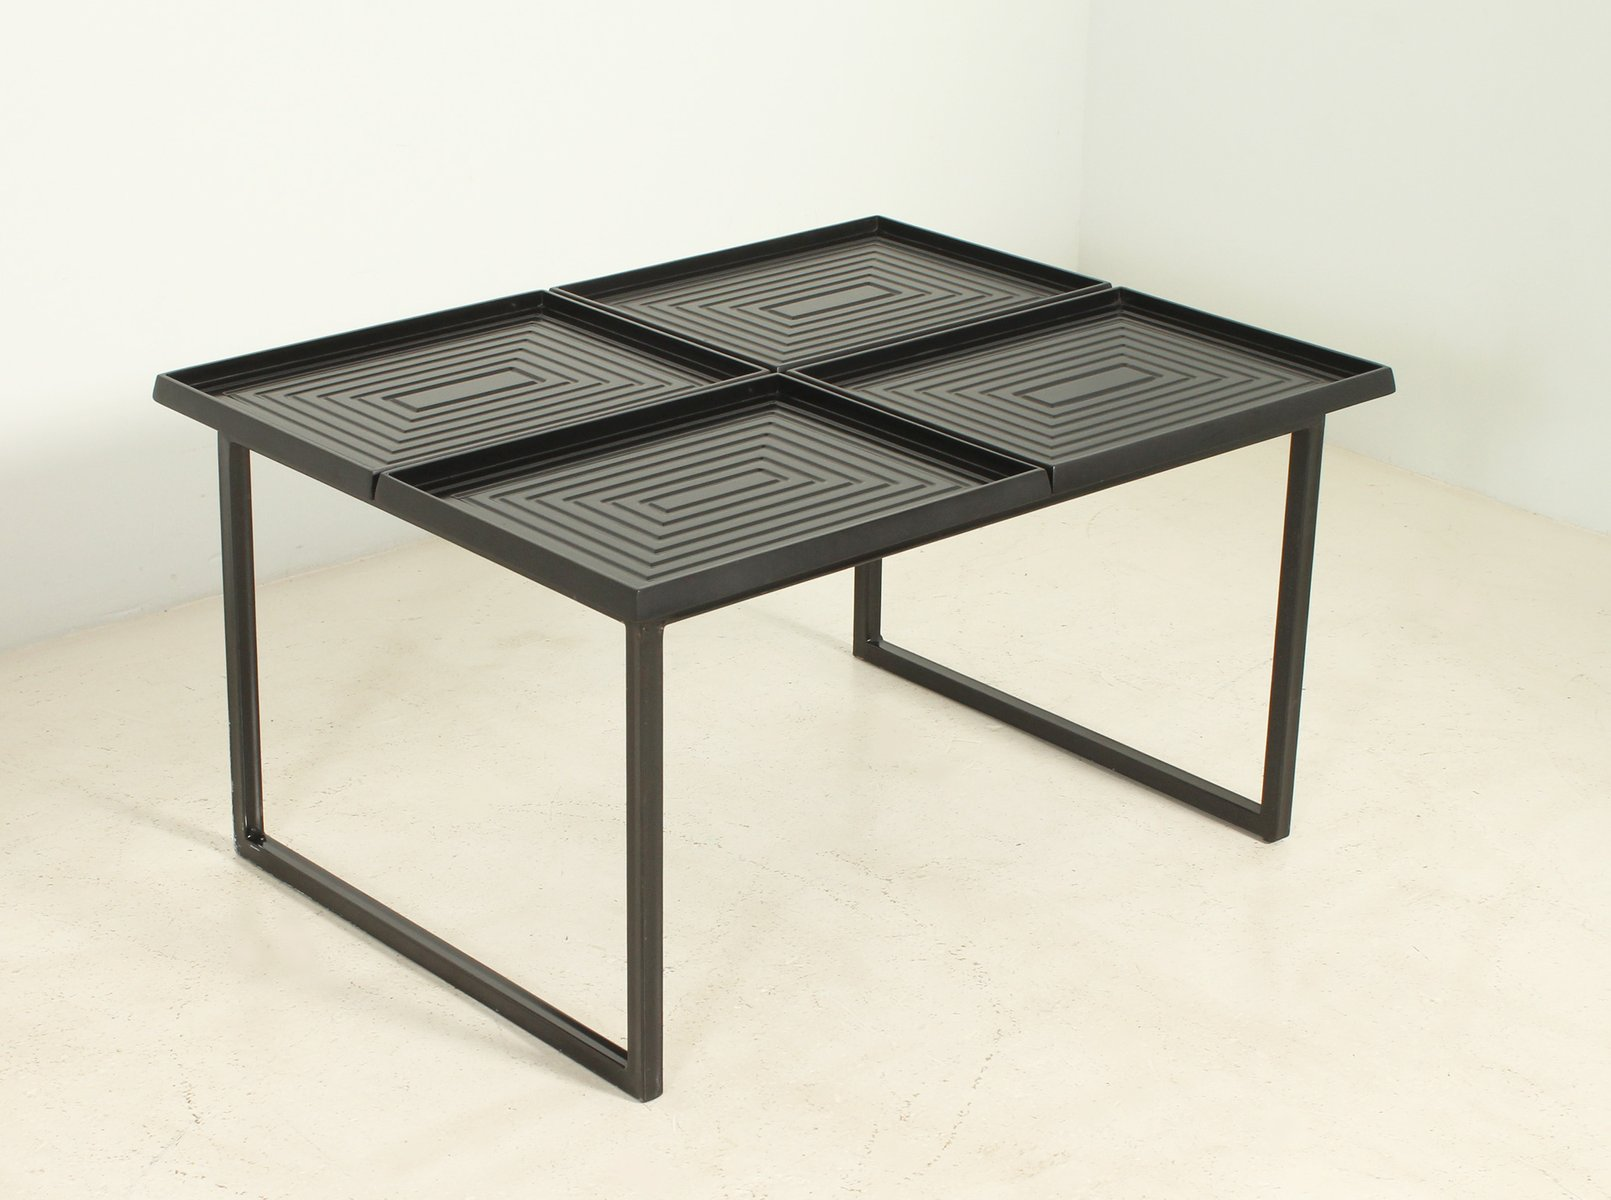 Geometric Coffee Table With Removable Trays 1980s